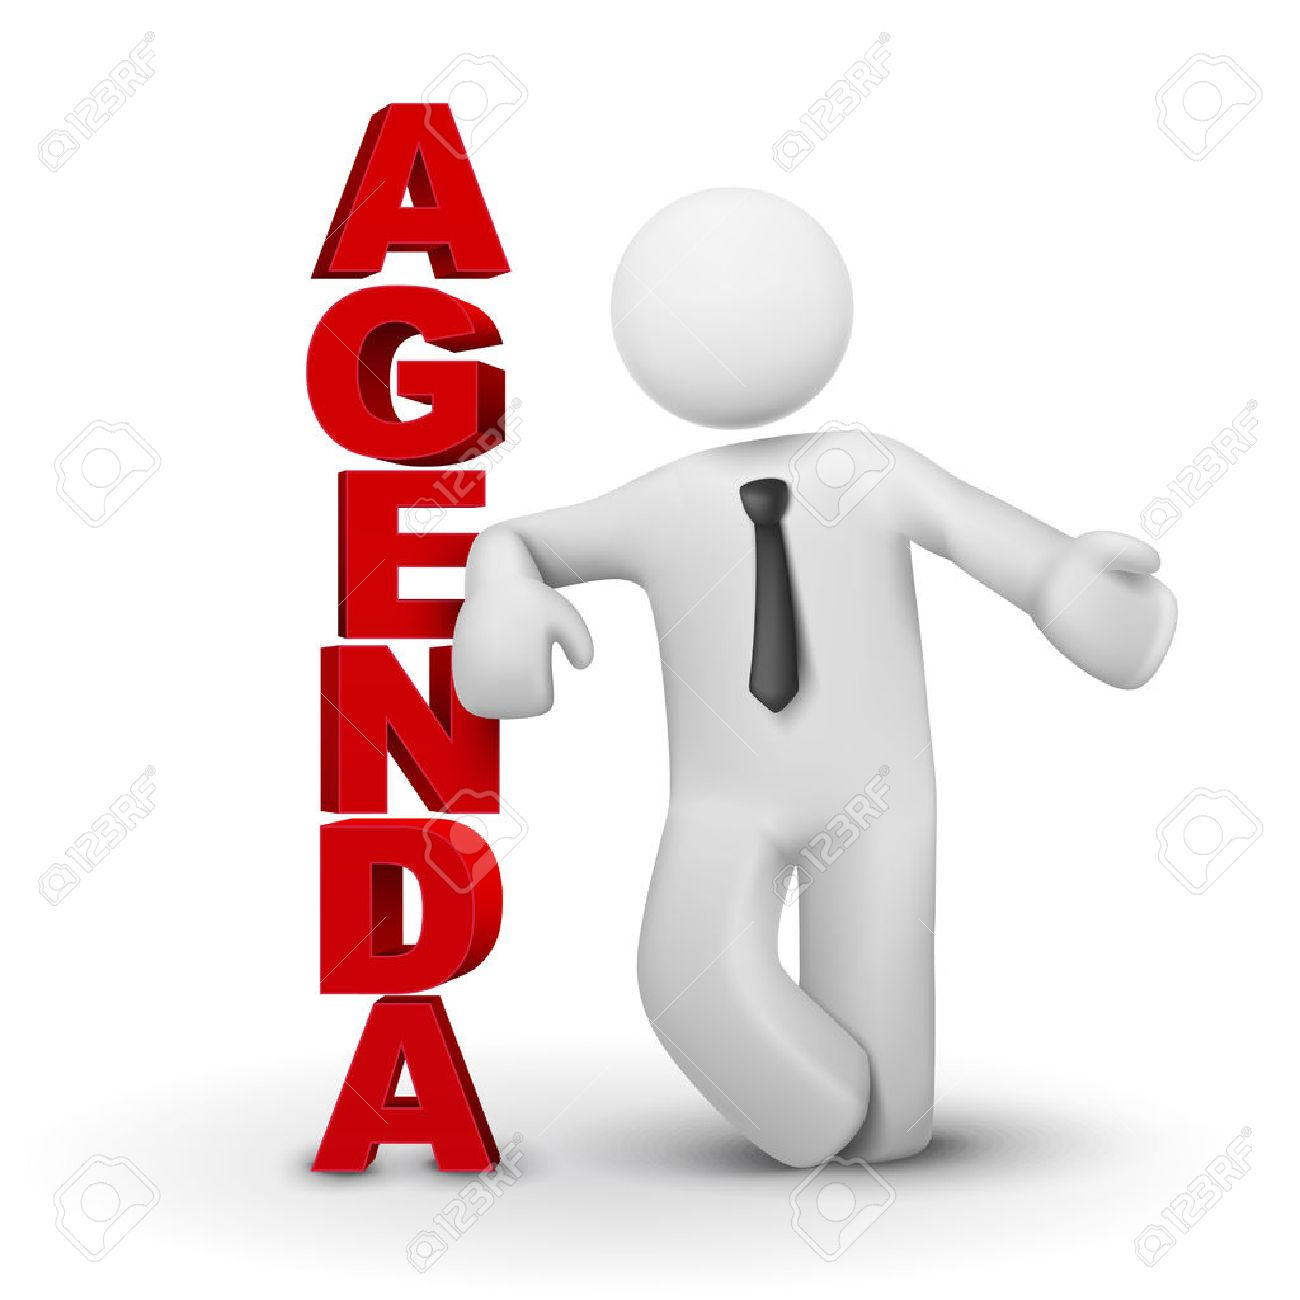 Agenda >> 3d Business Man Presenting Concept Of Agenda Isolated White